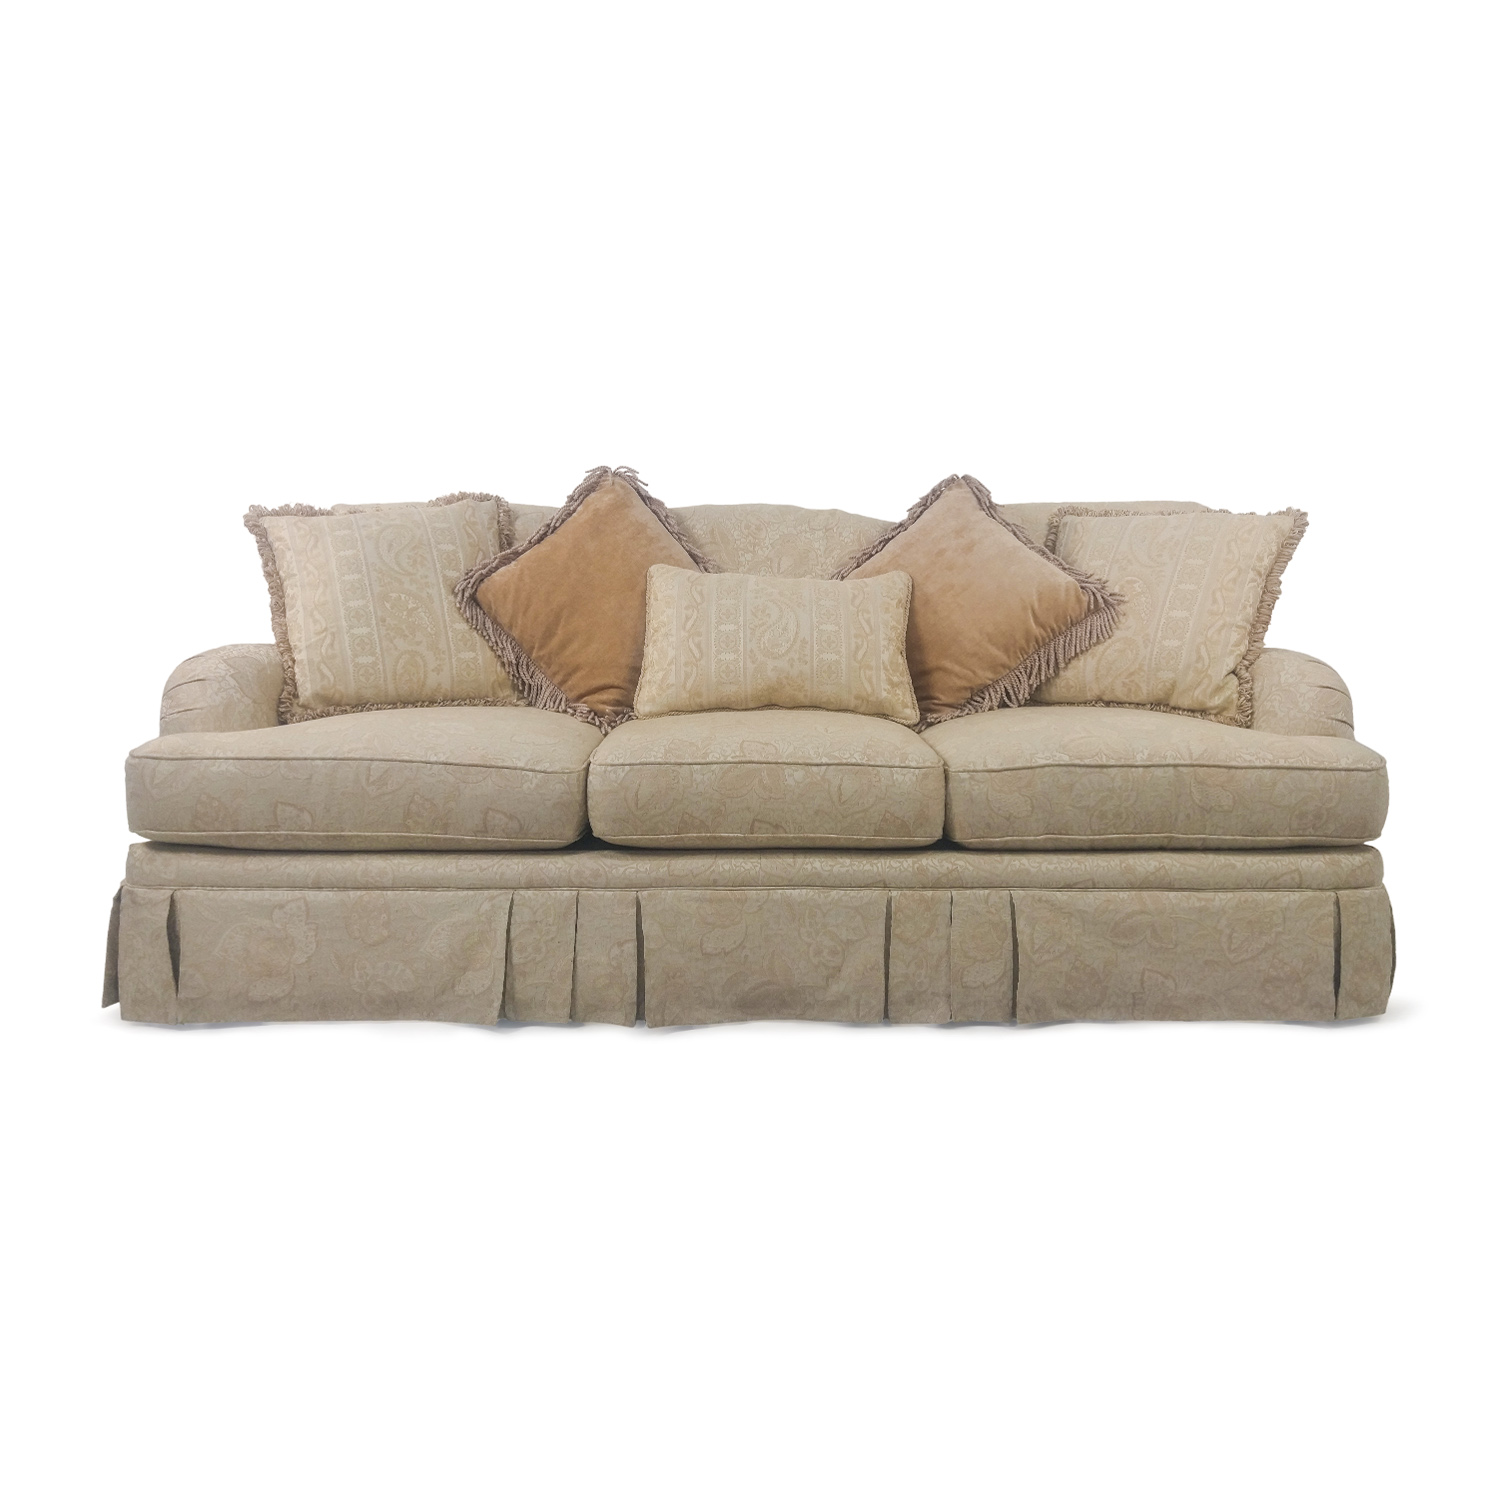 younger sofa james family room fabric alexander leather grampian furnishers hudson 4 seater